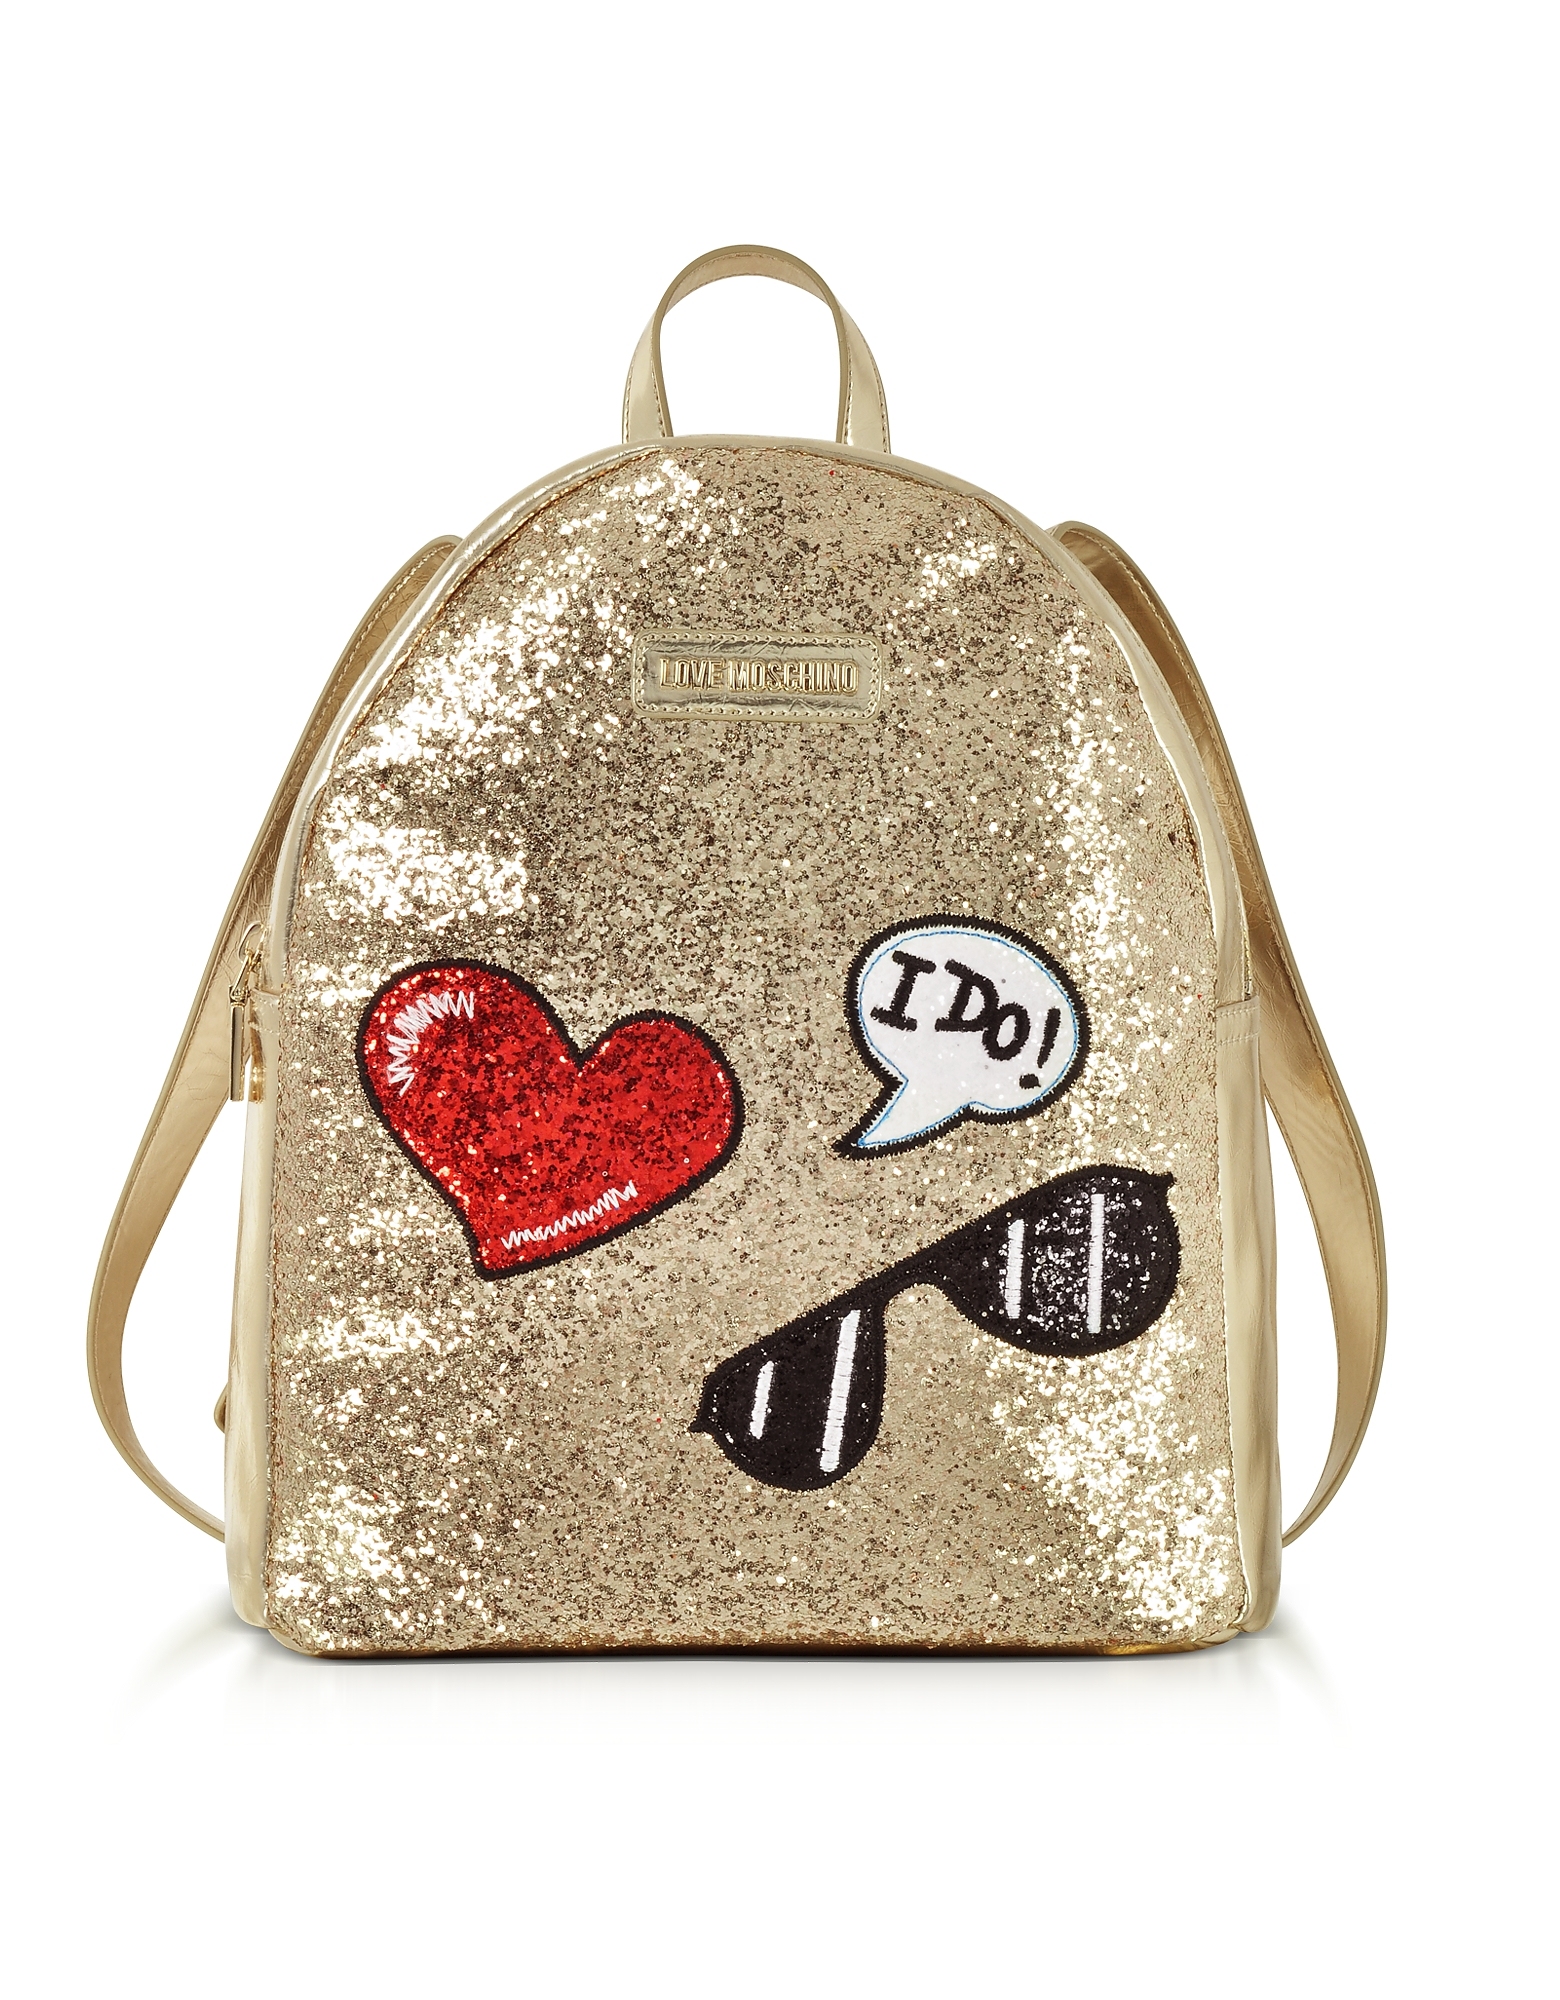 Love Moschino Handbags, Sparkling Metallic Gold Backpack